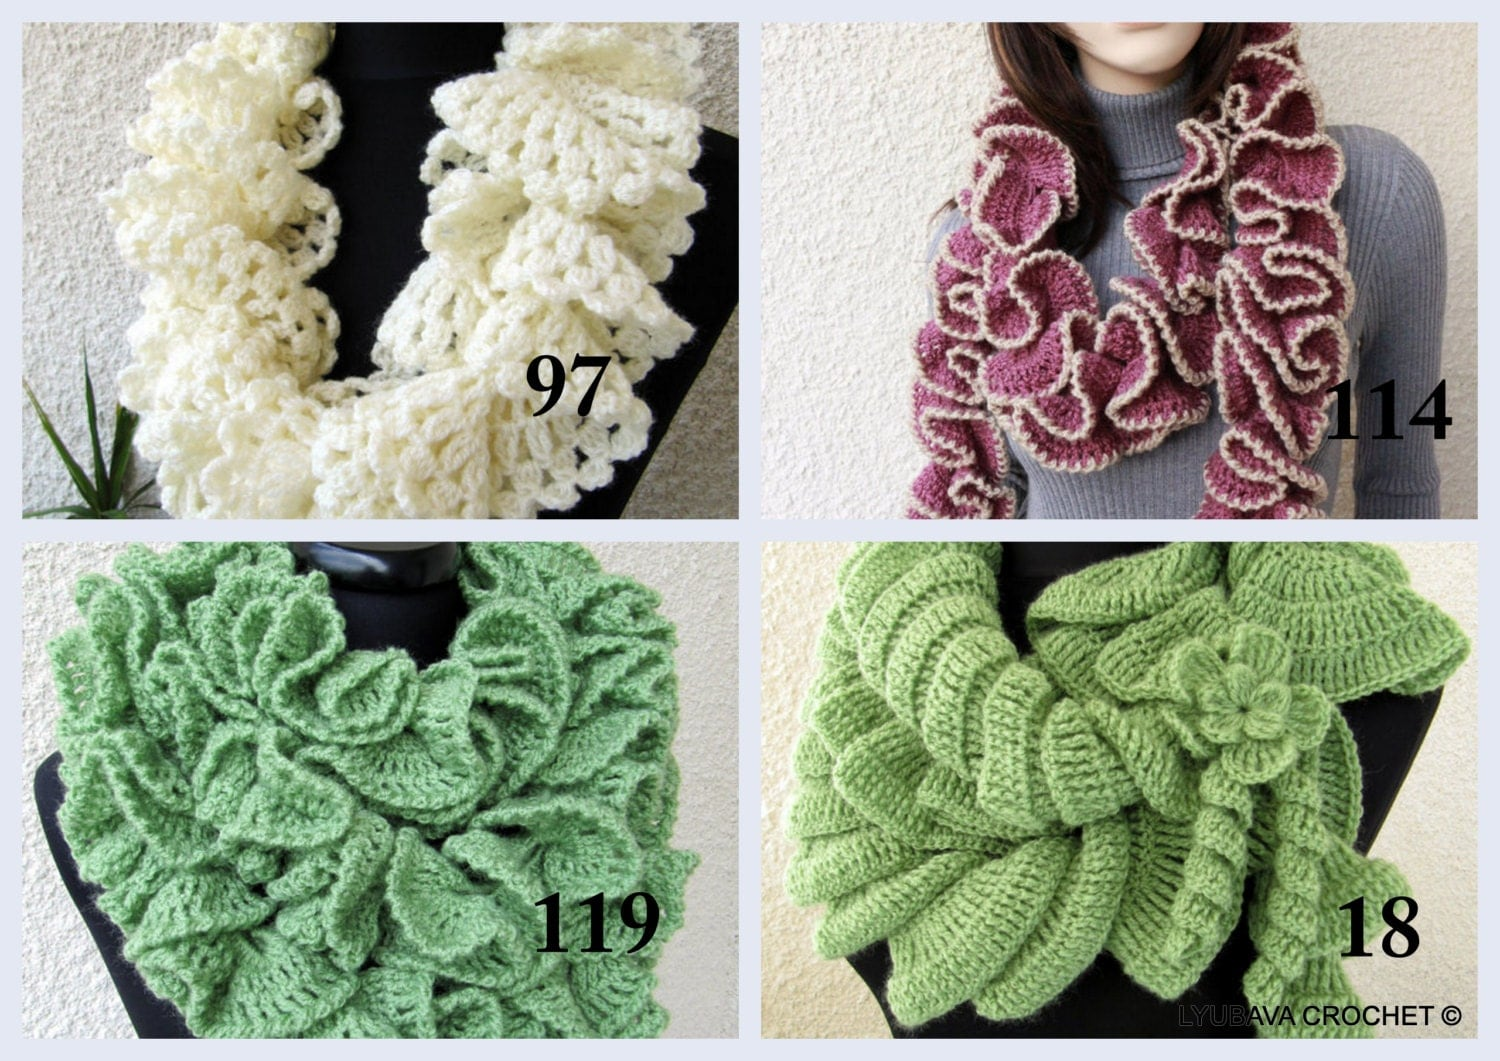 Crochet Patterns Unique : Crochet Ruffle Scarf PATTERNS Unique Crochet by LyubavaCrochet